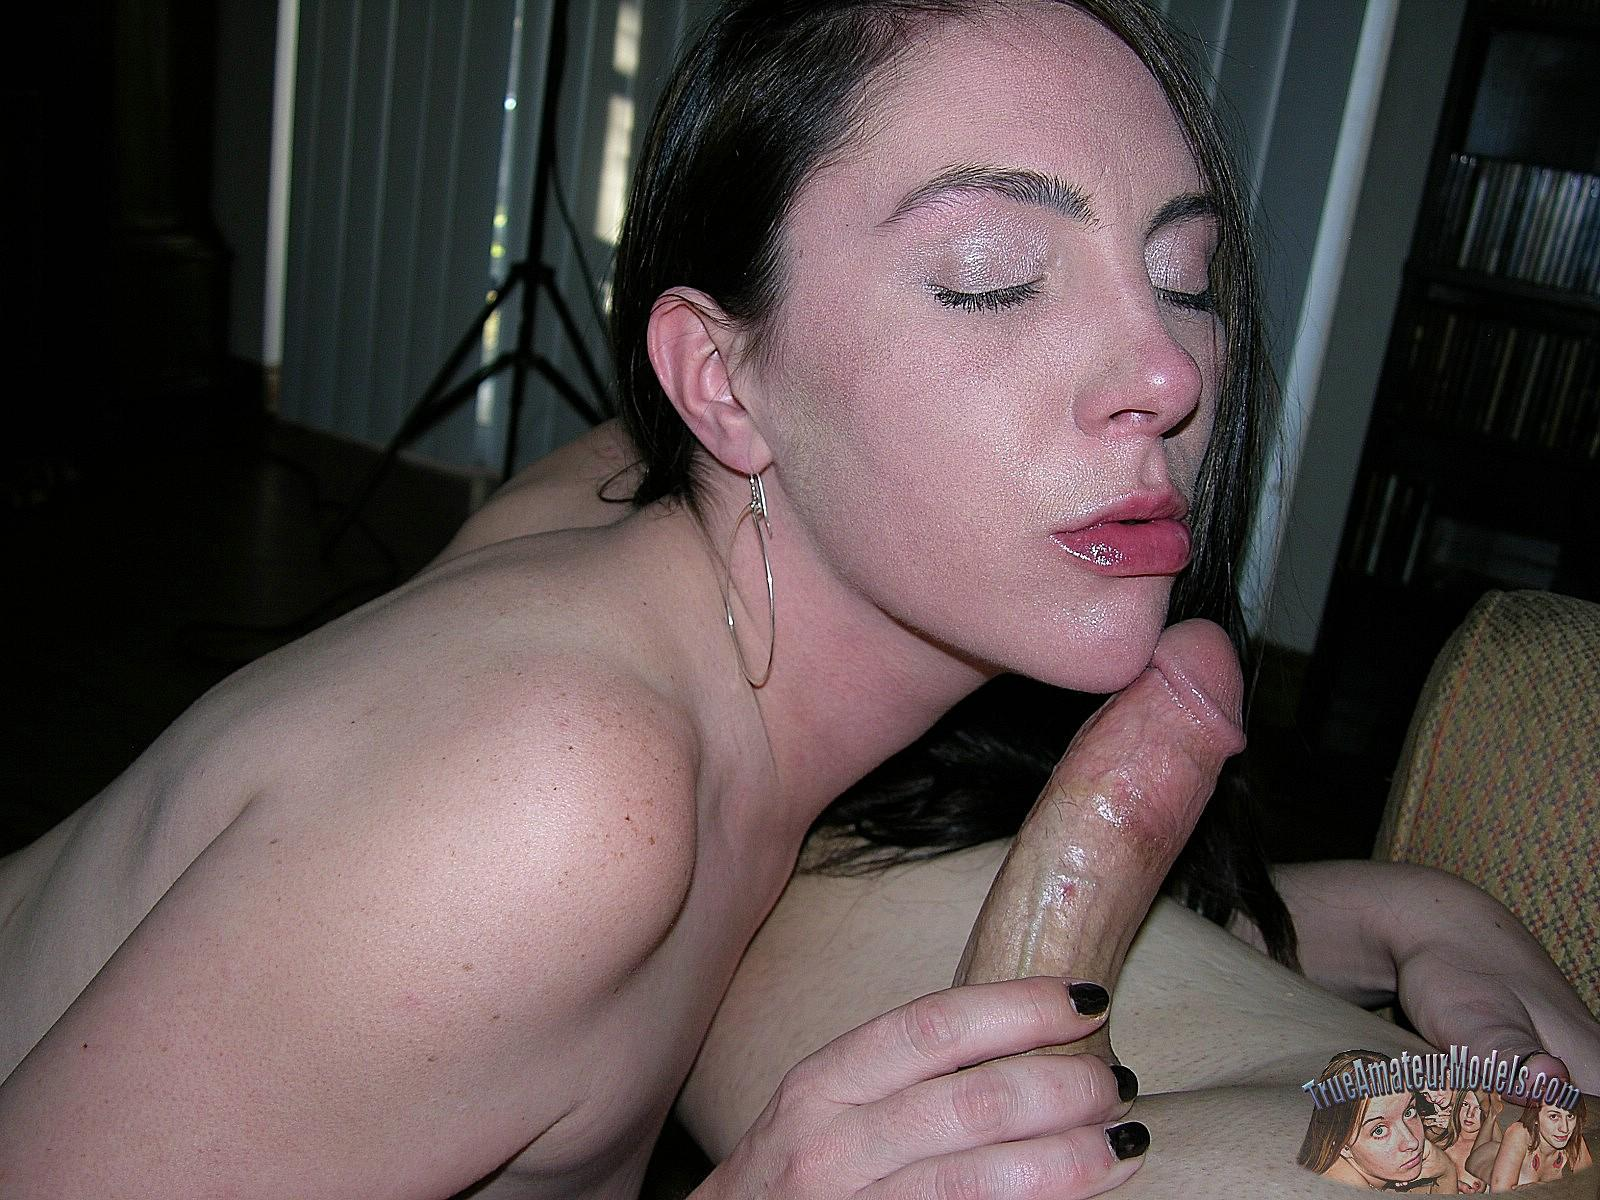 Fucking Pictures Shaved pussy deloused prison